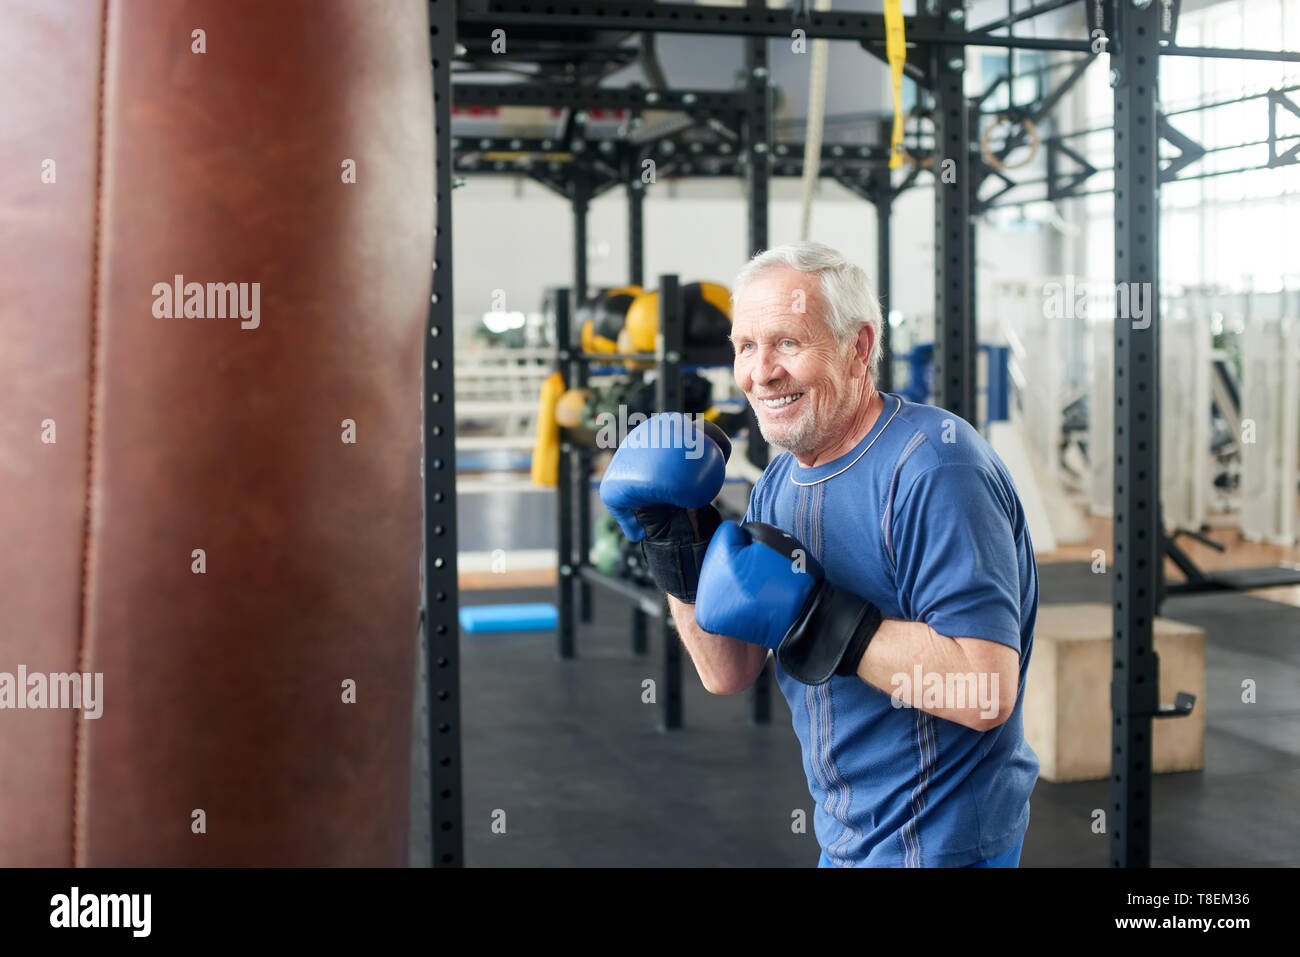 Handsome senior male training with punching bag. Old trainer training with punching bag in fitness studio. People, sport, active way of life. - Stock Image